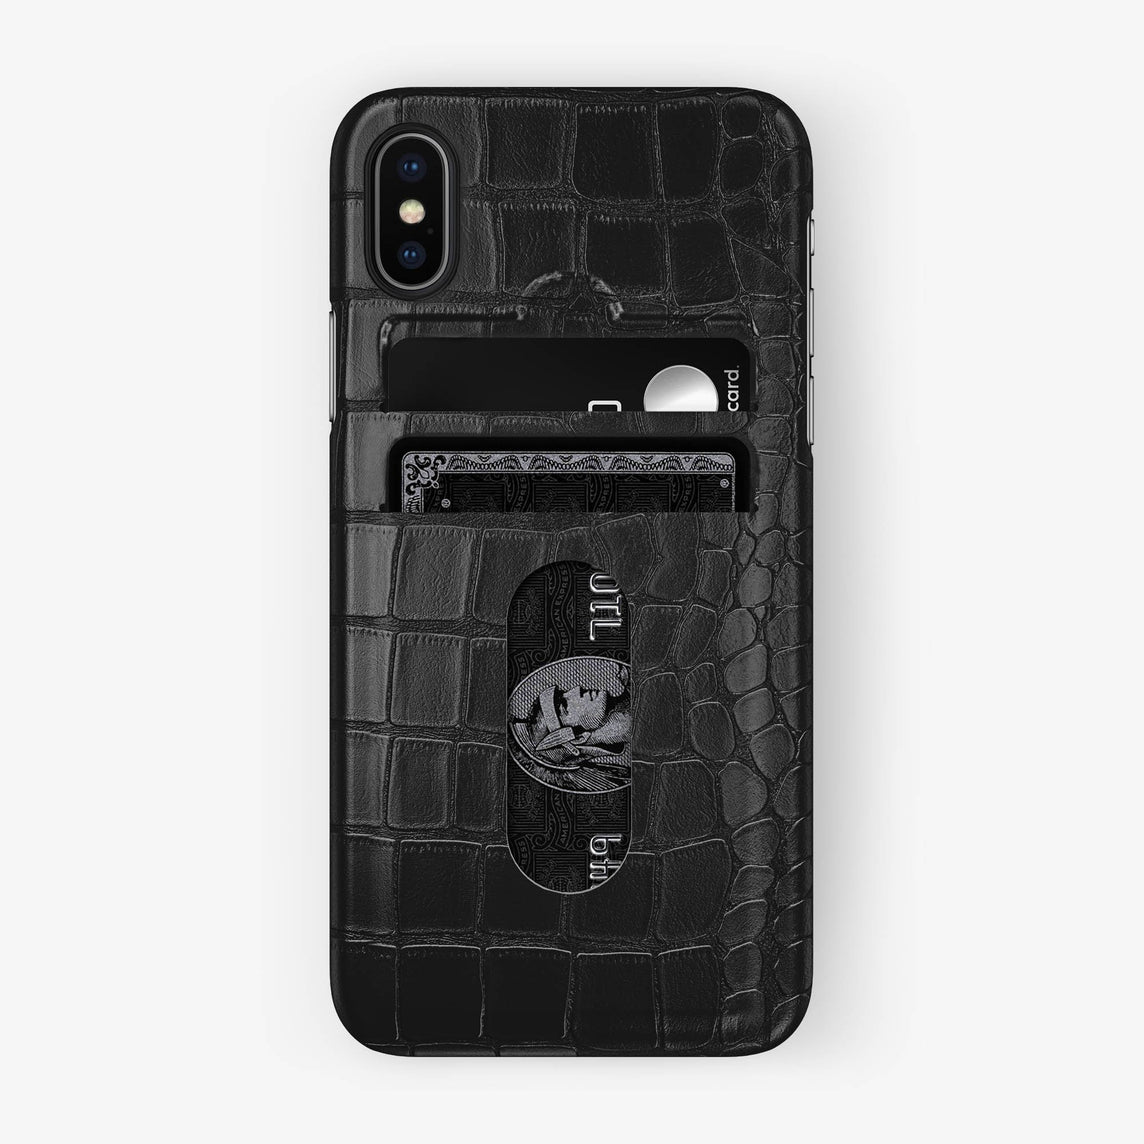 Alligator Card Holder Case iPhone X/Xs | Black - Black with-personalization